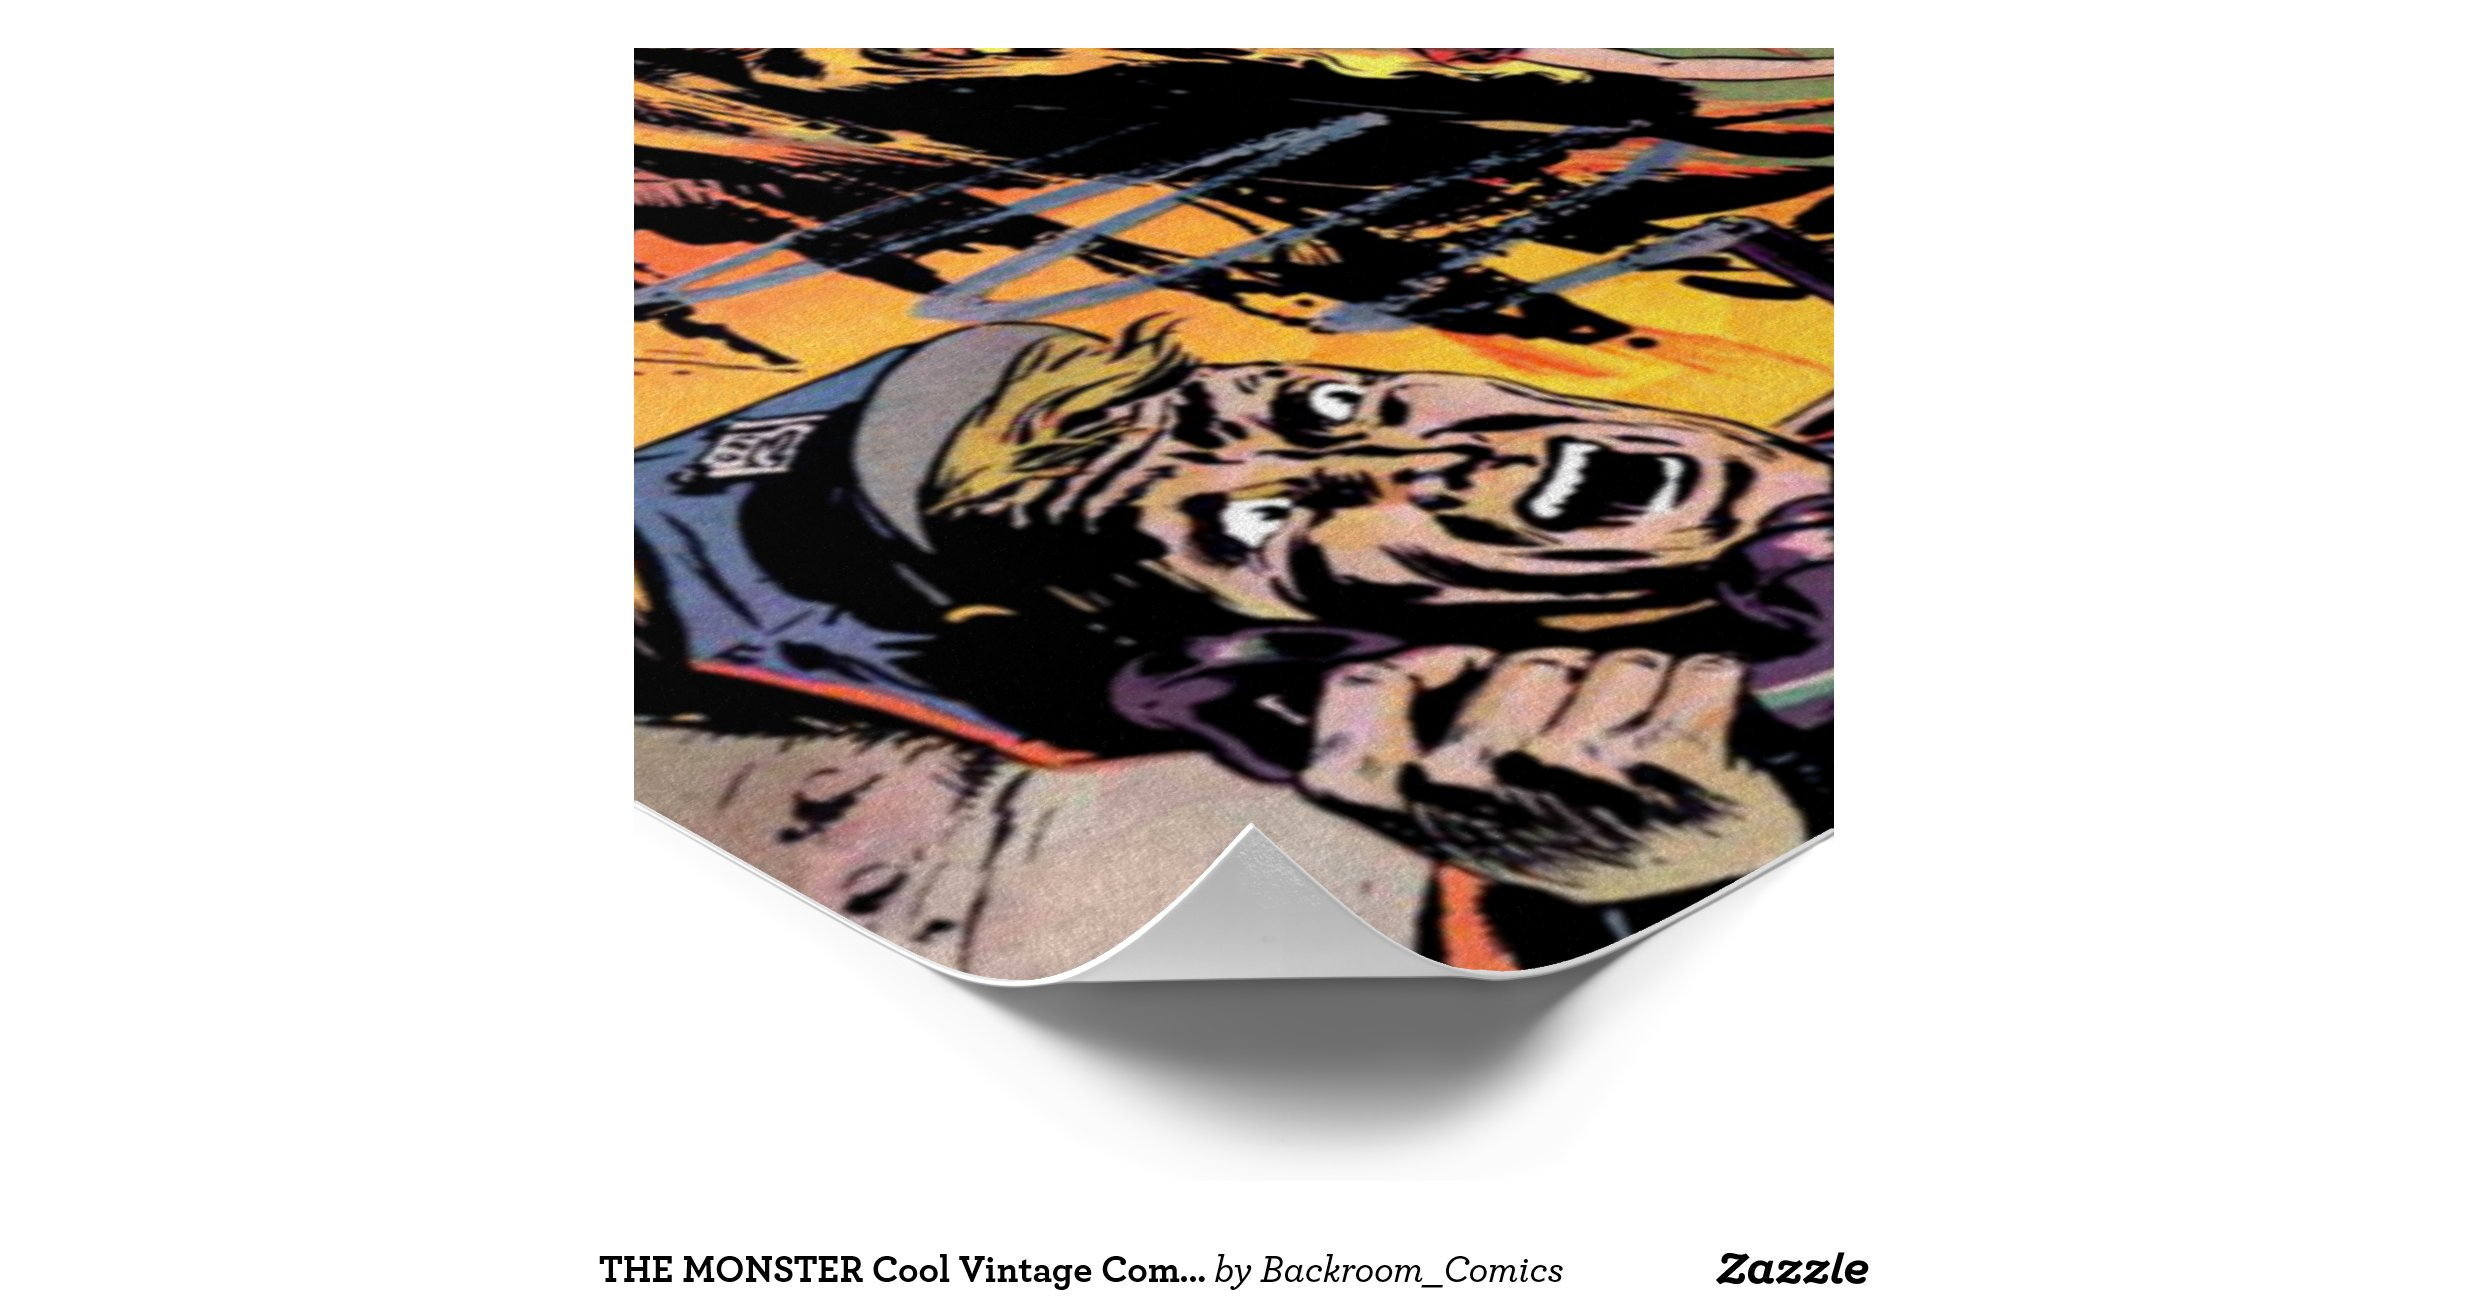 Cool Book Cover Posters : The monster cool vintage comic book cover art poster zazzle